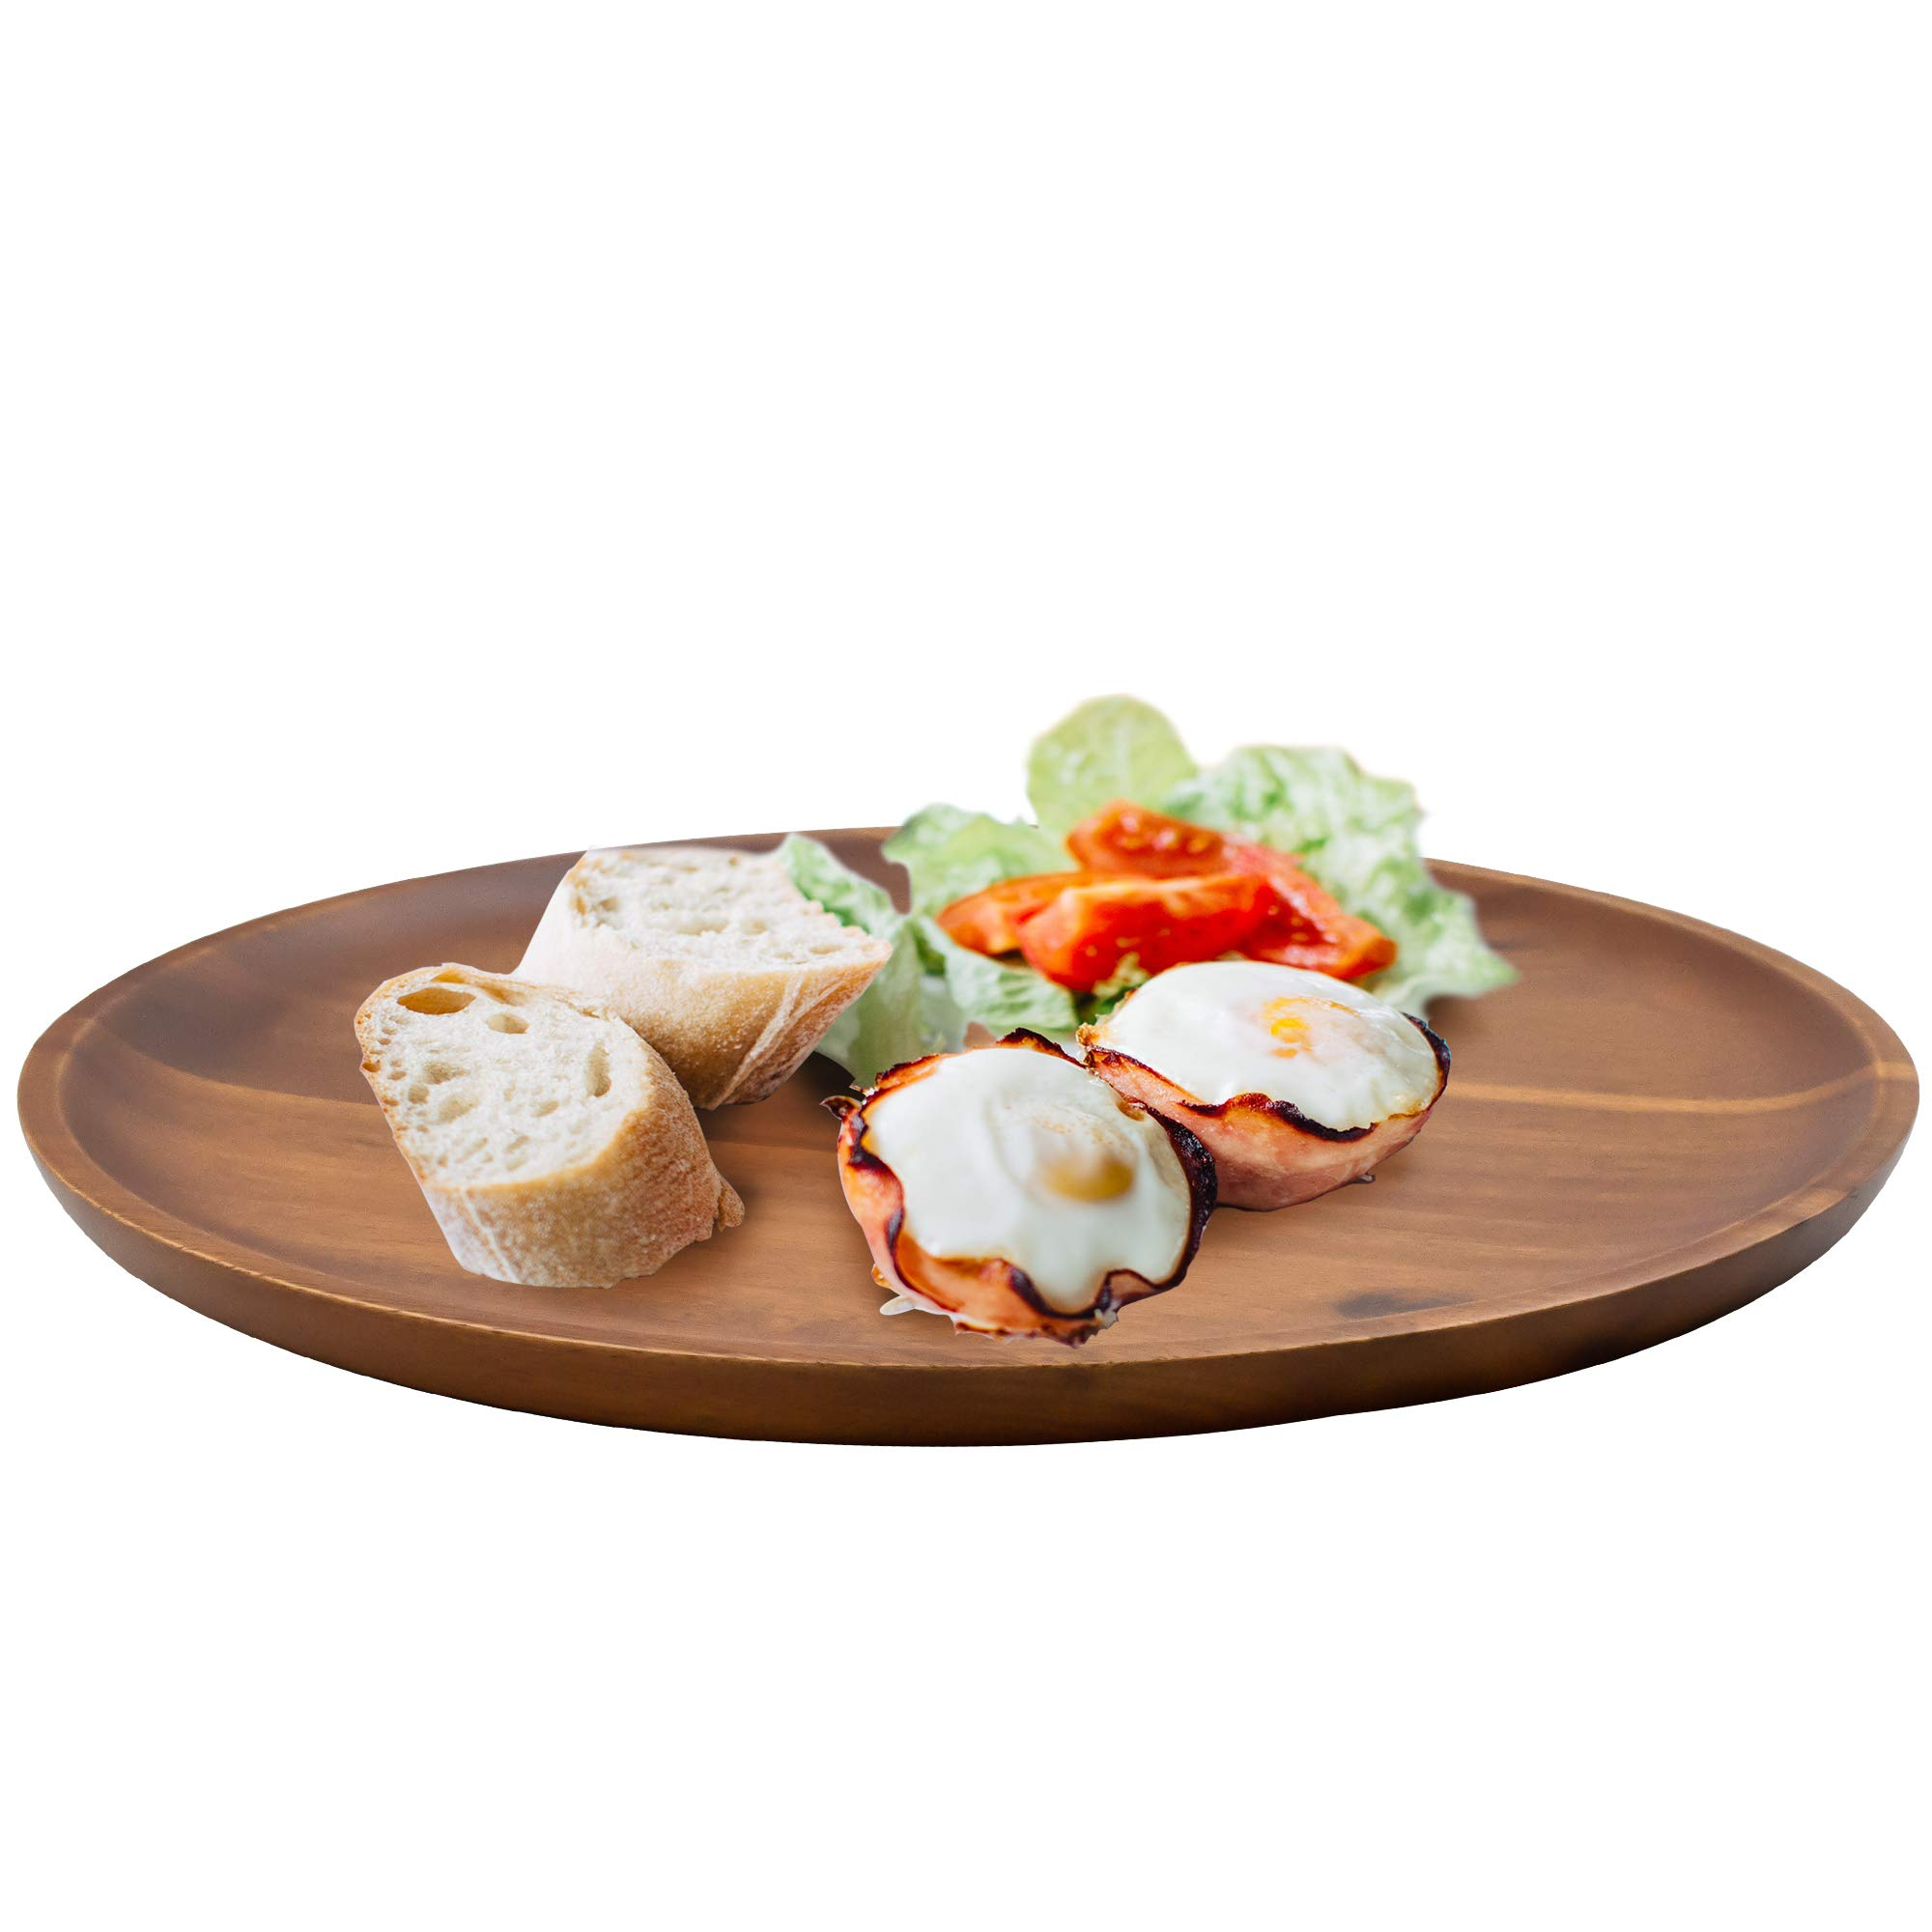 AIDEA Acacia Wood Food Serving Charger Plates - 11 inch Set of 4 Round Wooden Dishes Snack Plates by AIDEA (Image #3)